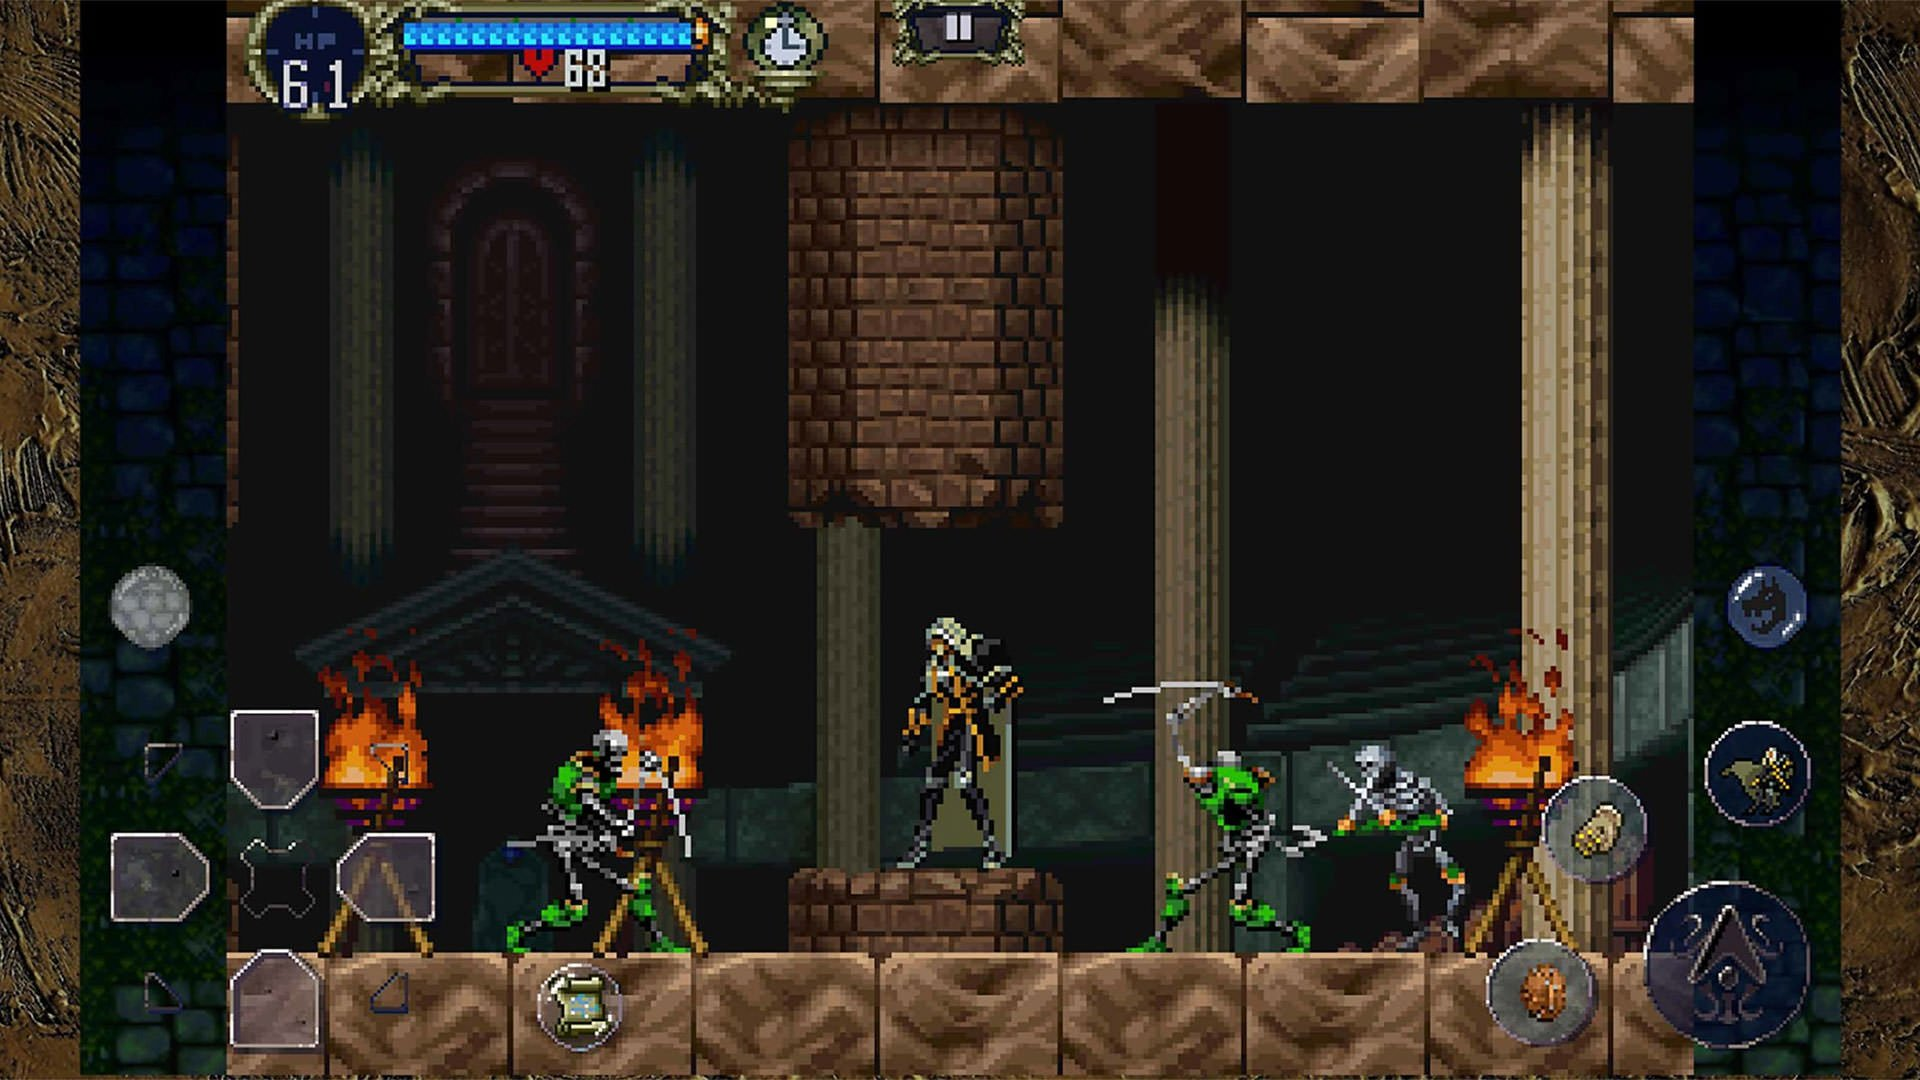 بازی اندروید Castlevania: Symphony of the Night